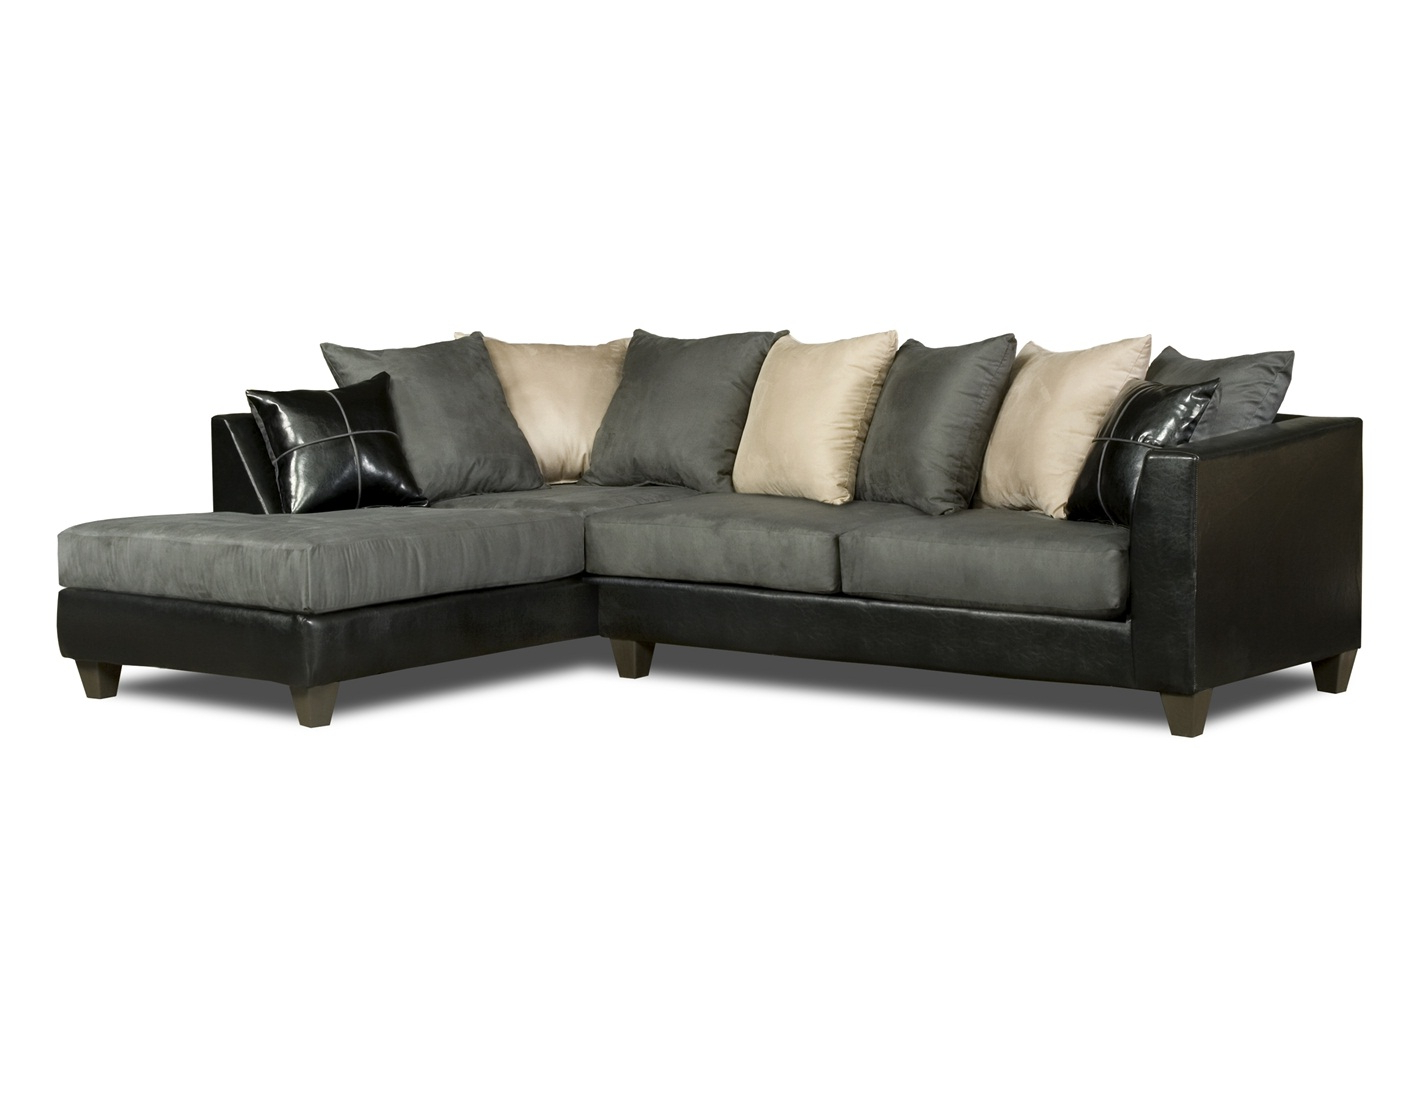 Black, Gray & White Sectional Sofa Loose Pillow Back 4184 Within Well Known Lyvia Pillowback Sofa Sectional Sofas (View 23 of 25)